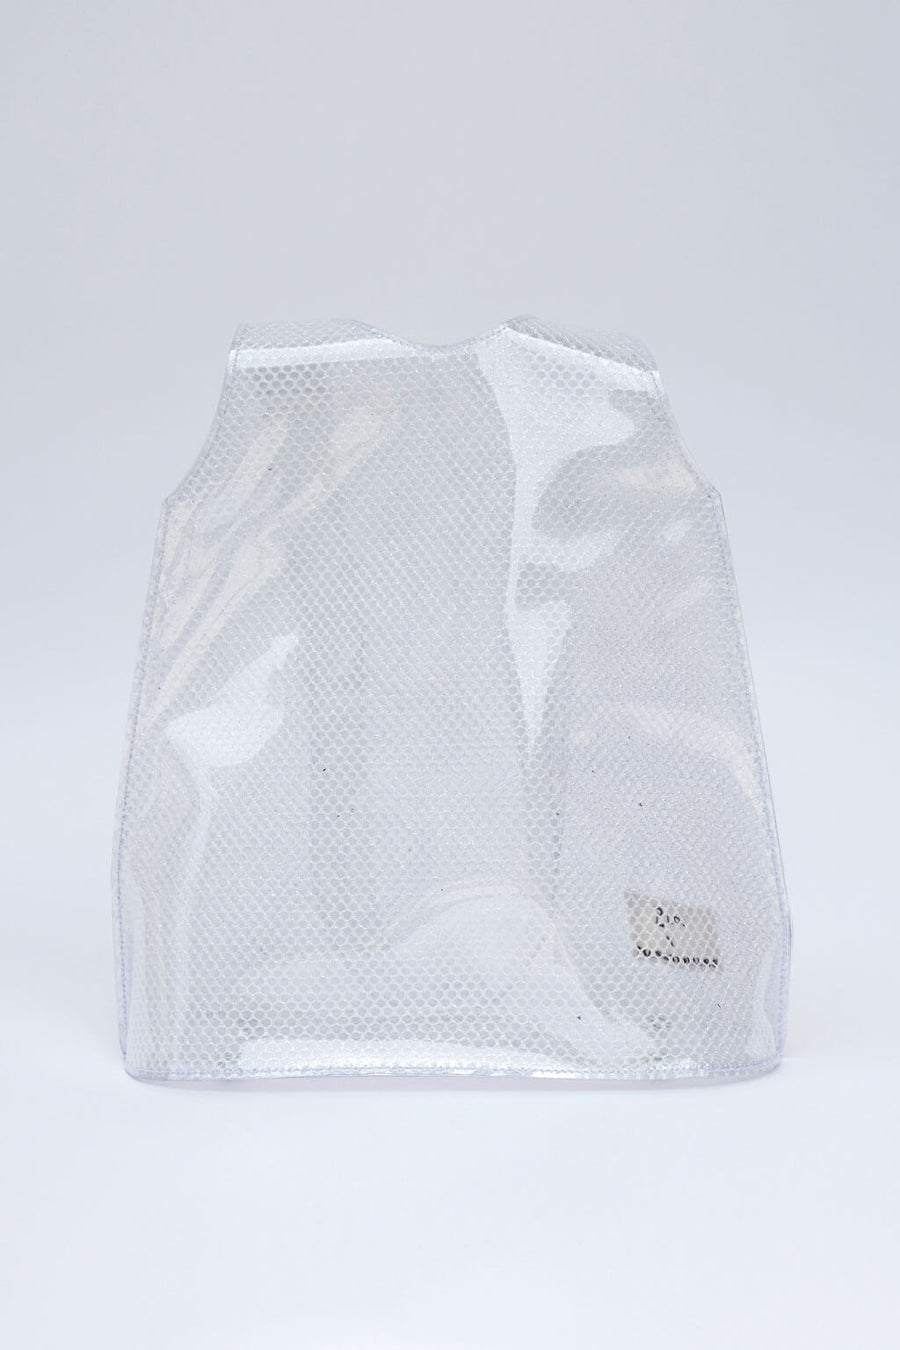 Top Bag Net